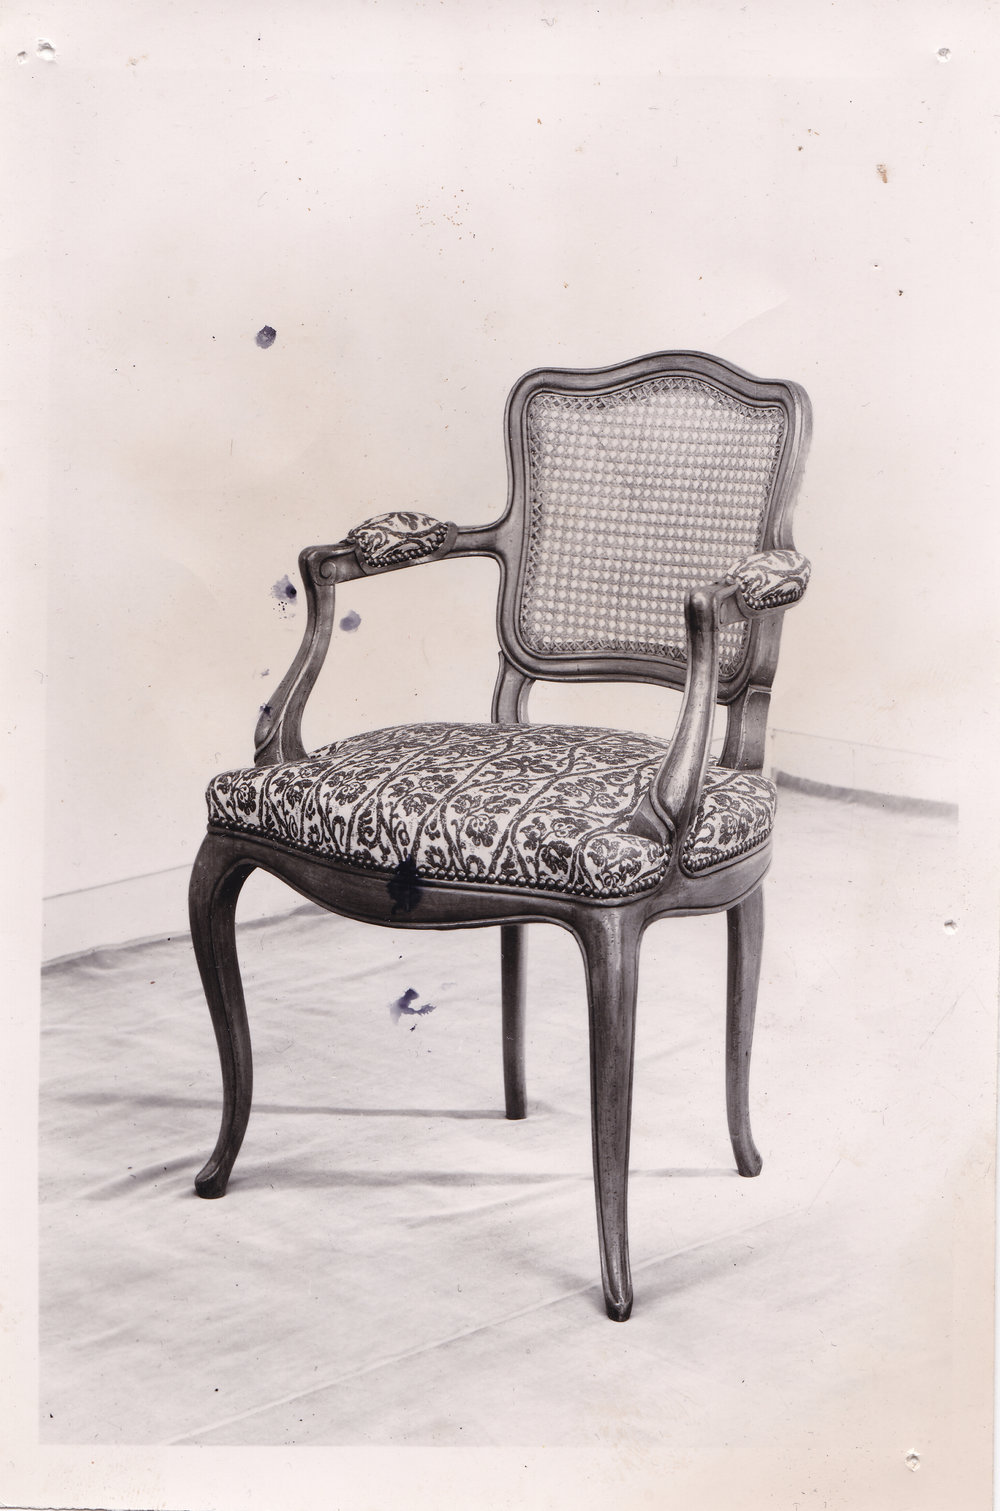 Chair found in one of Roderich´s last hideouts. It is believed to be his favorite working chair, where he signed the order for the mass killings. RTF/Archive